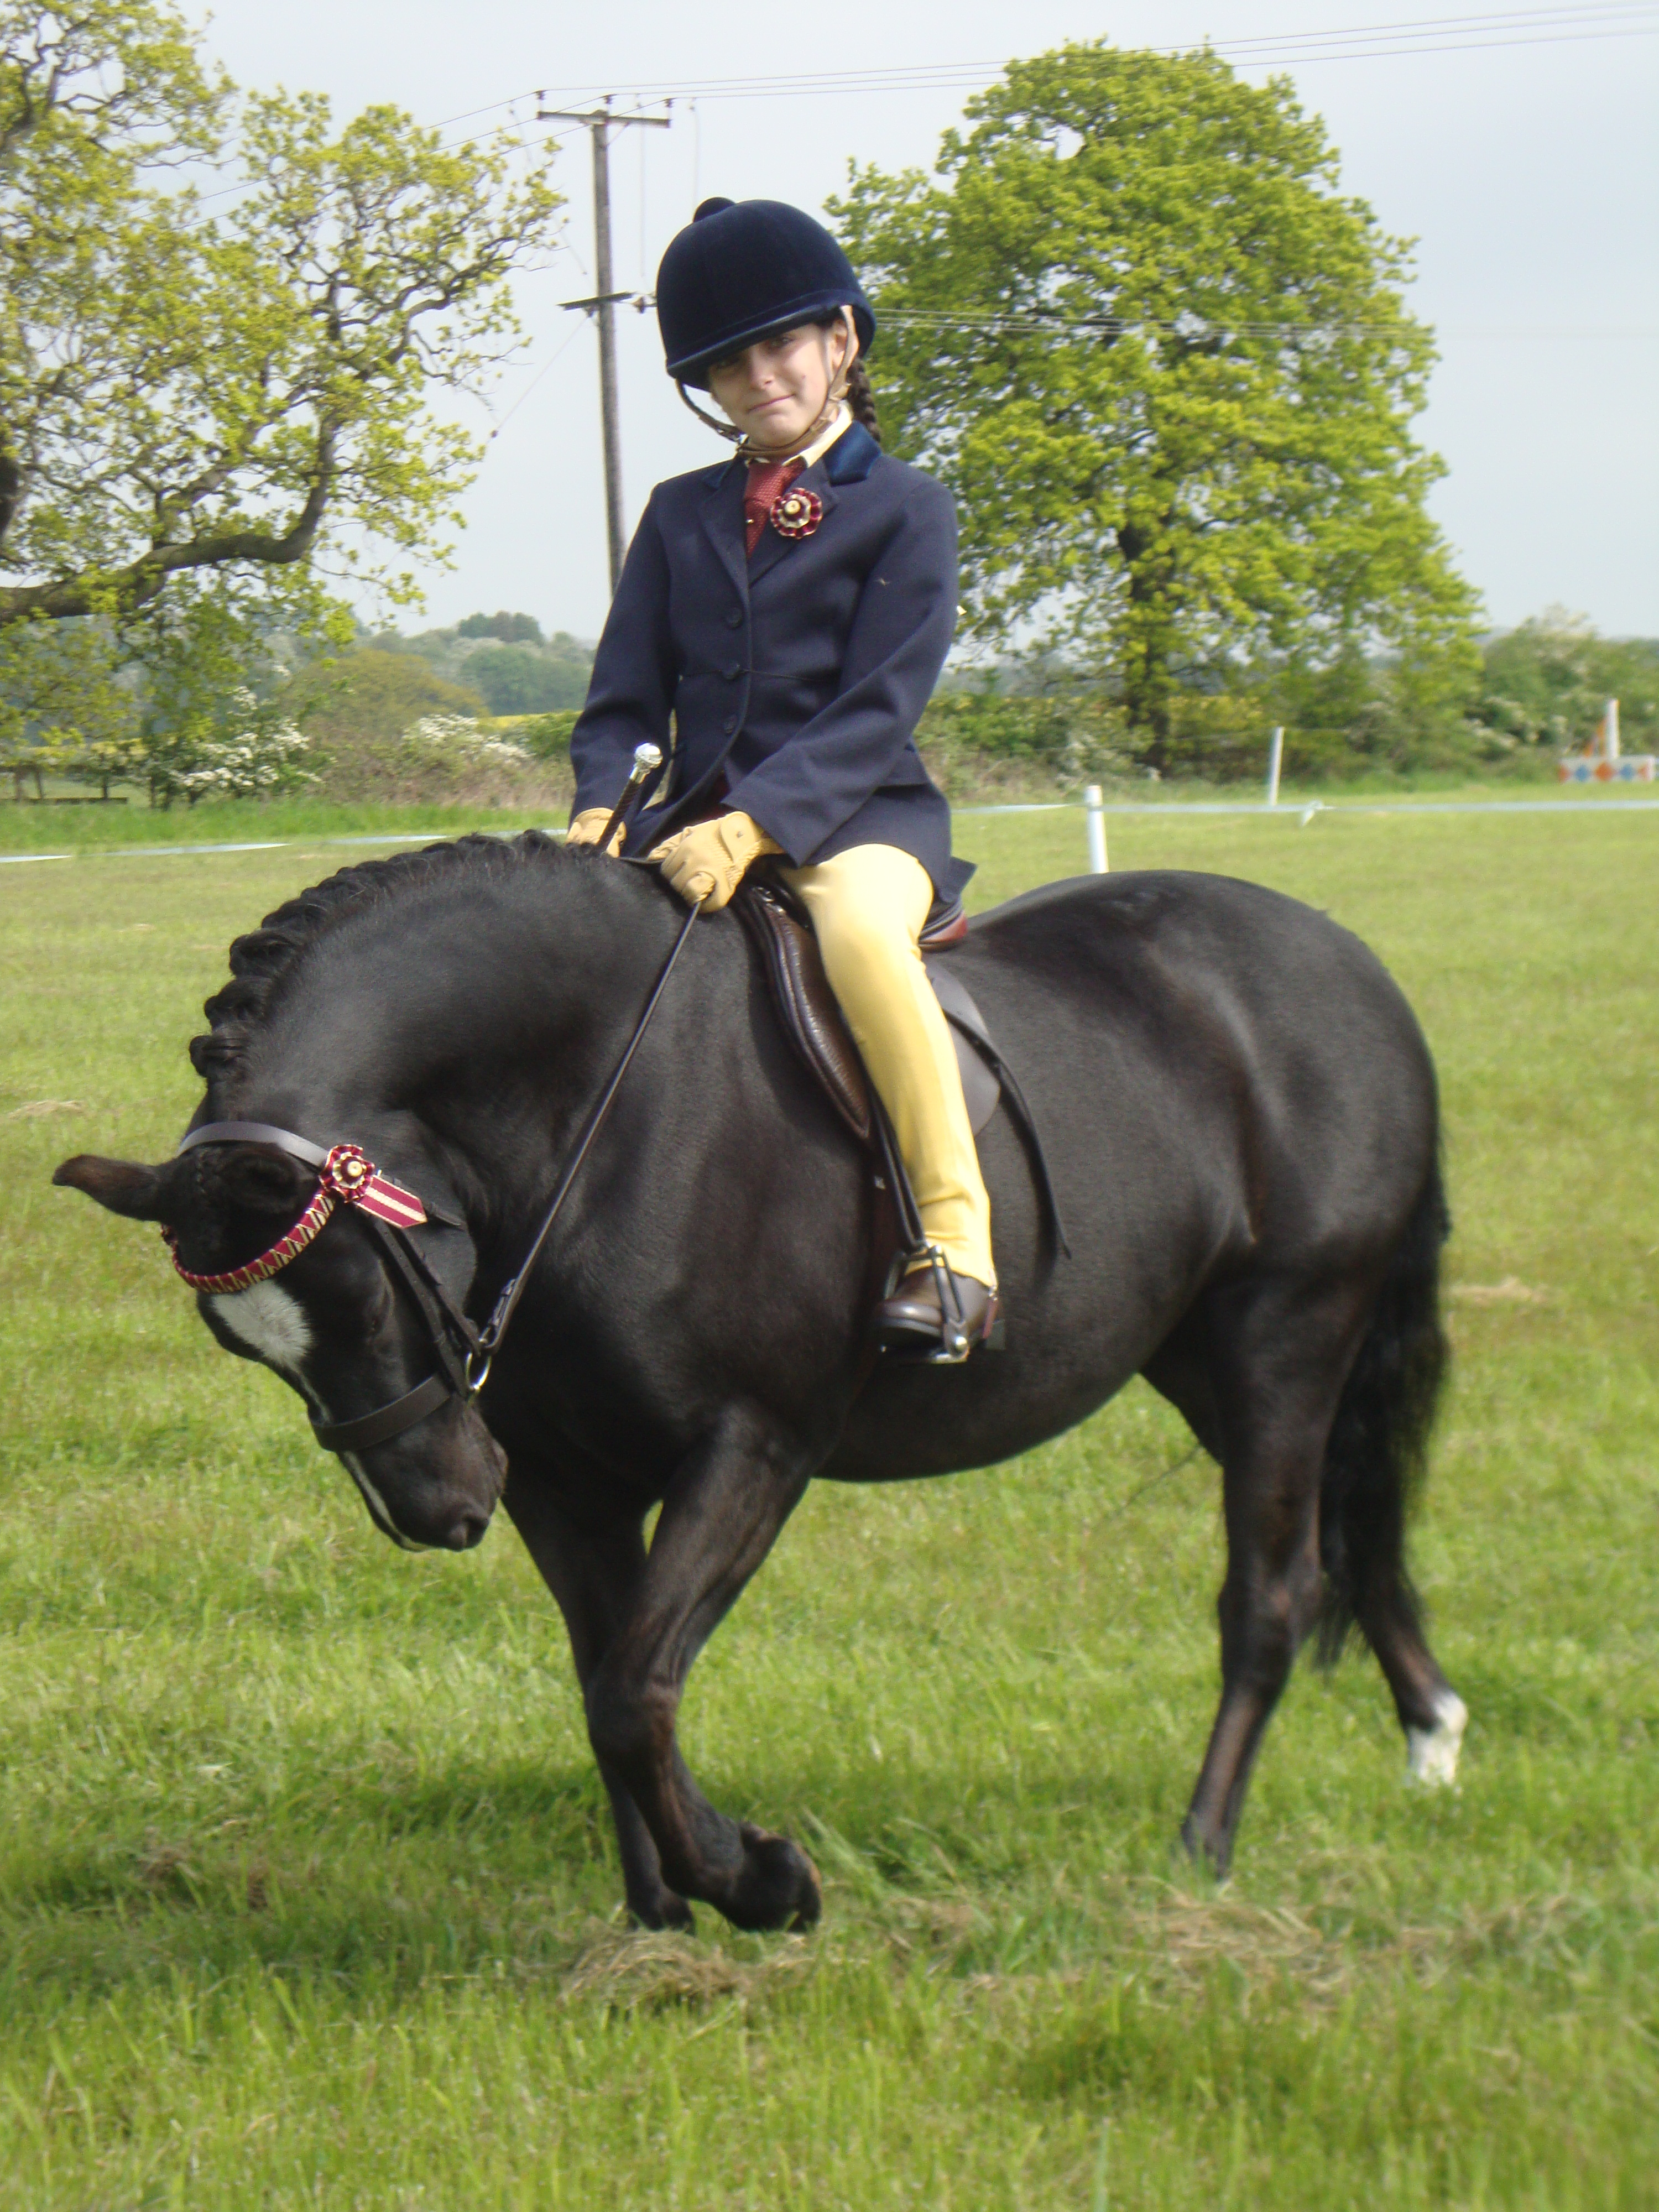 Ellie Mae Lees on Daddys Overdraft - Ilkeston and District Riding Club